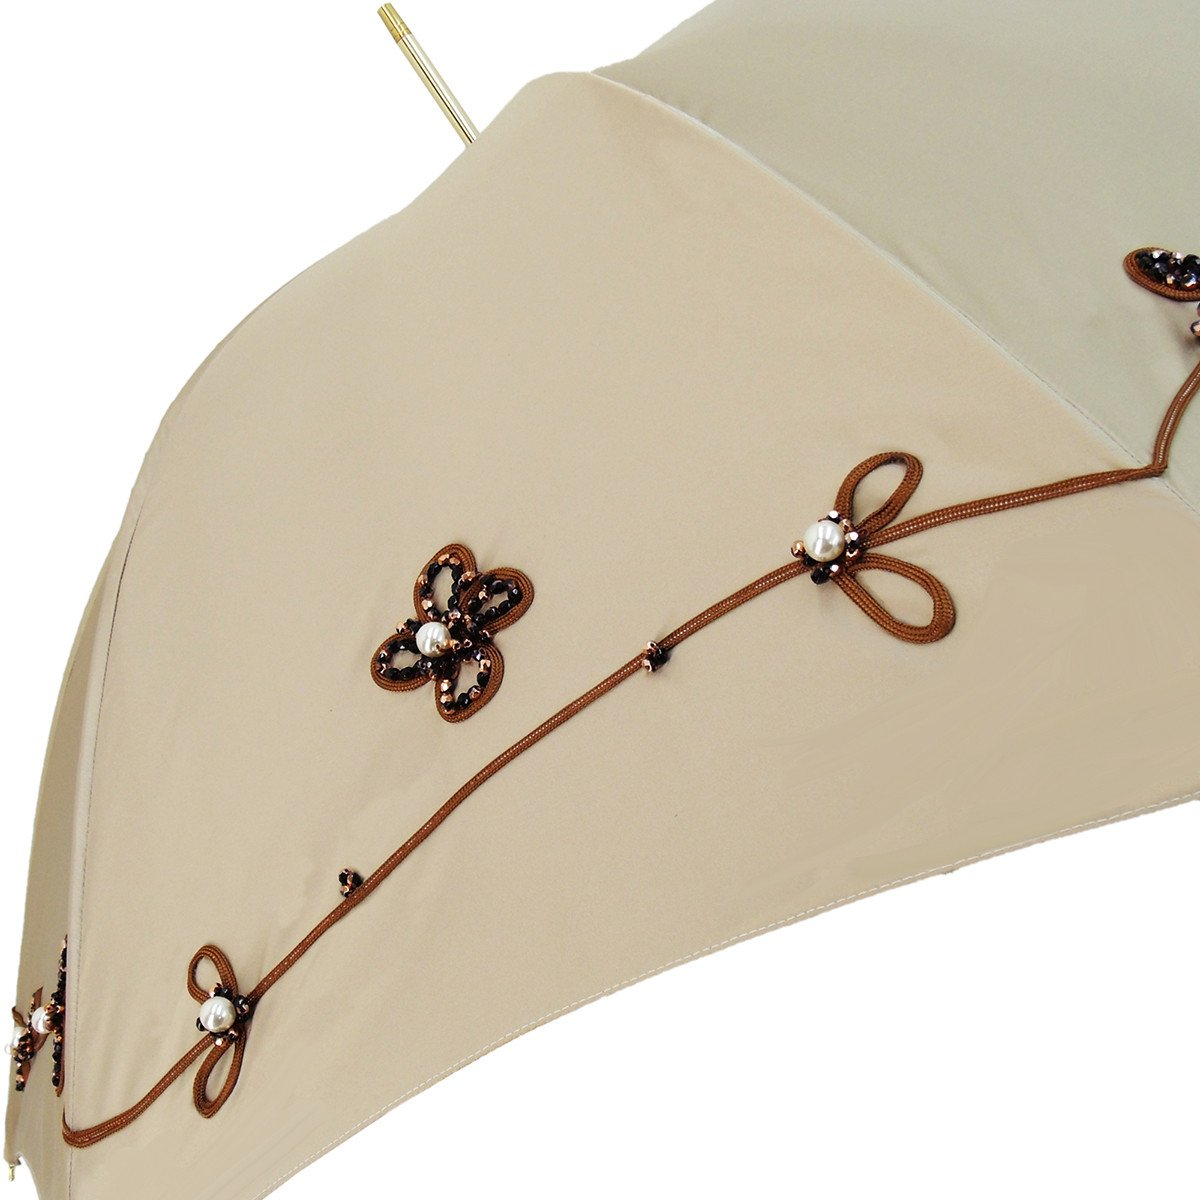 Embroidery Ivory Umbrella - Jewel with Hand Sewn Pearls - Double Cloth - il-marchesato